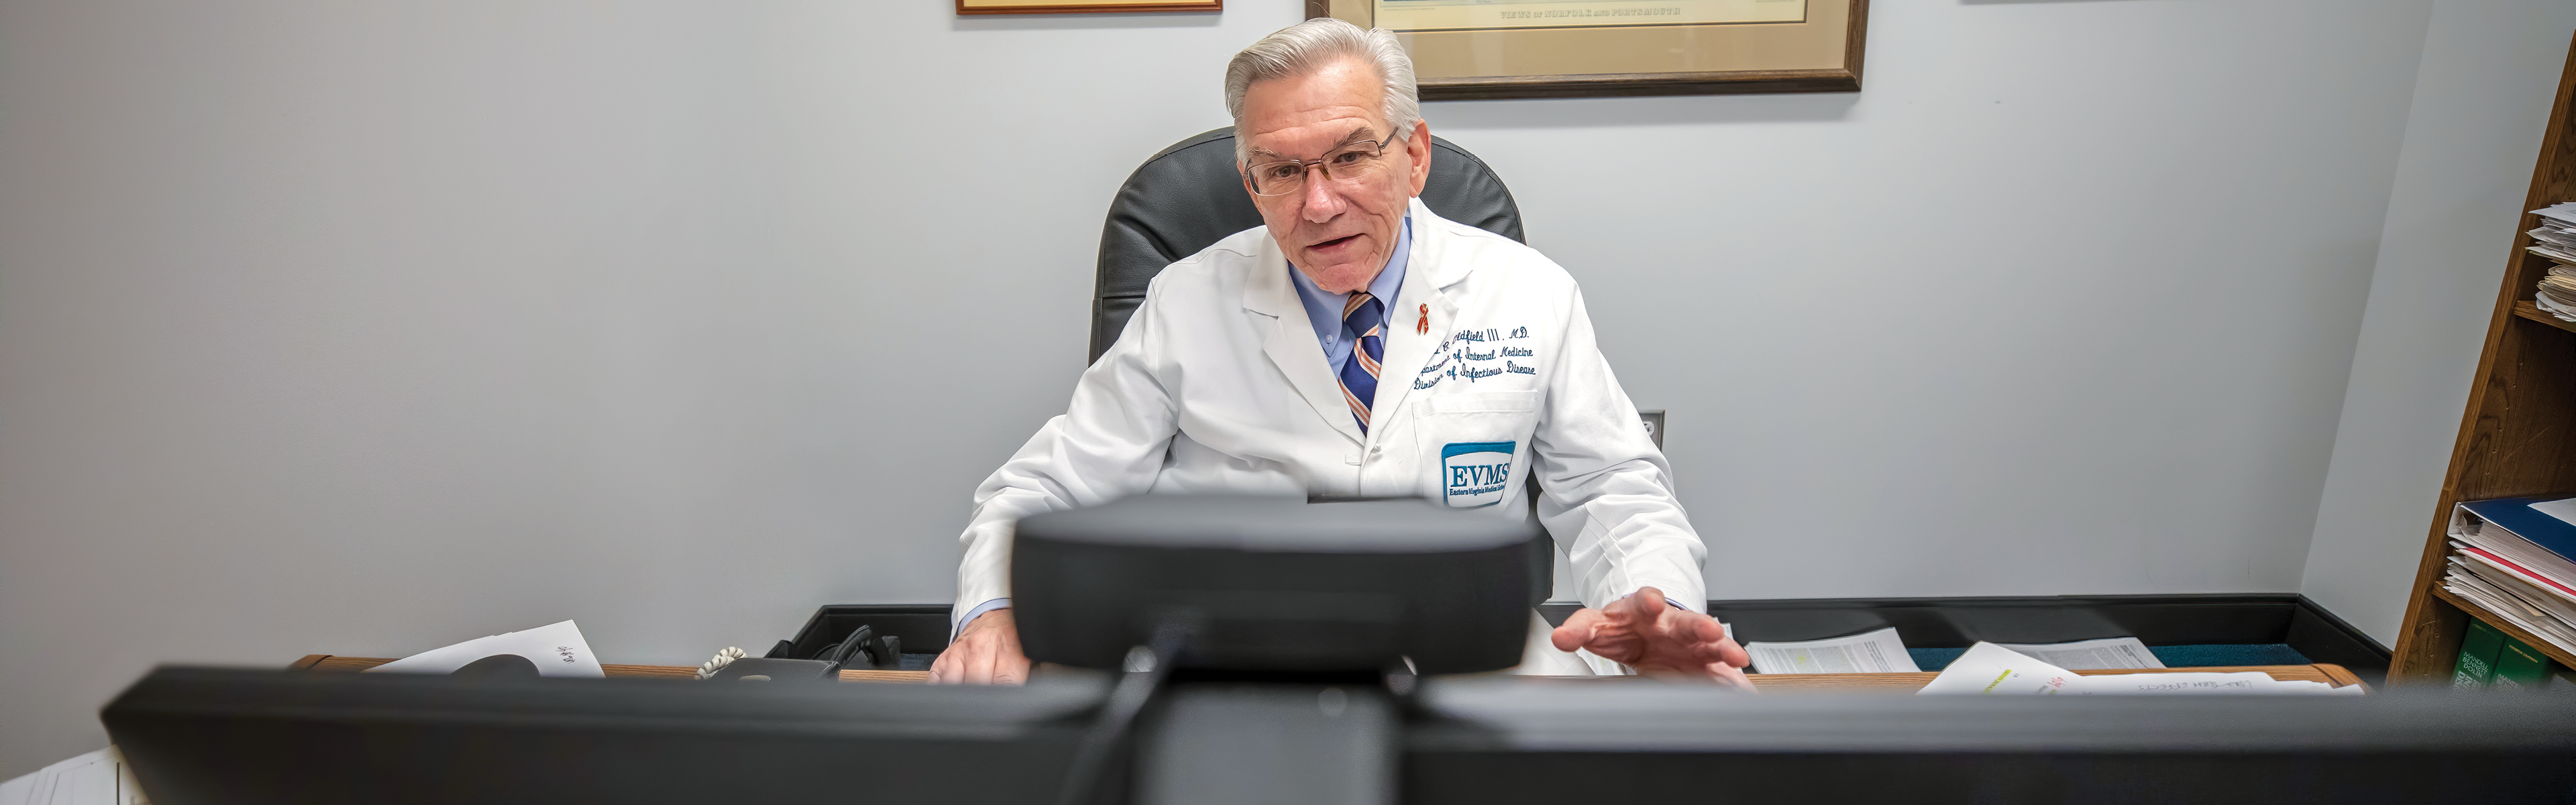 •Dr. Edward Oldfield sits in front of his computer at his office desk while on a video conference call. There is a web cam attached to the top of his computer monitor.